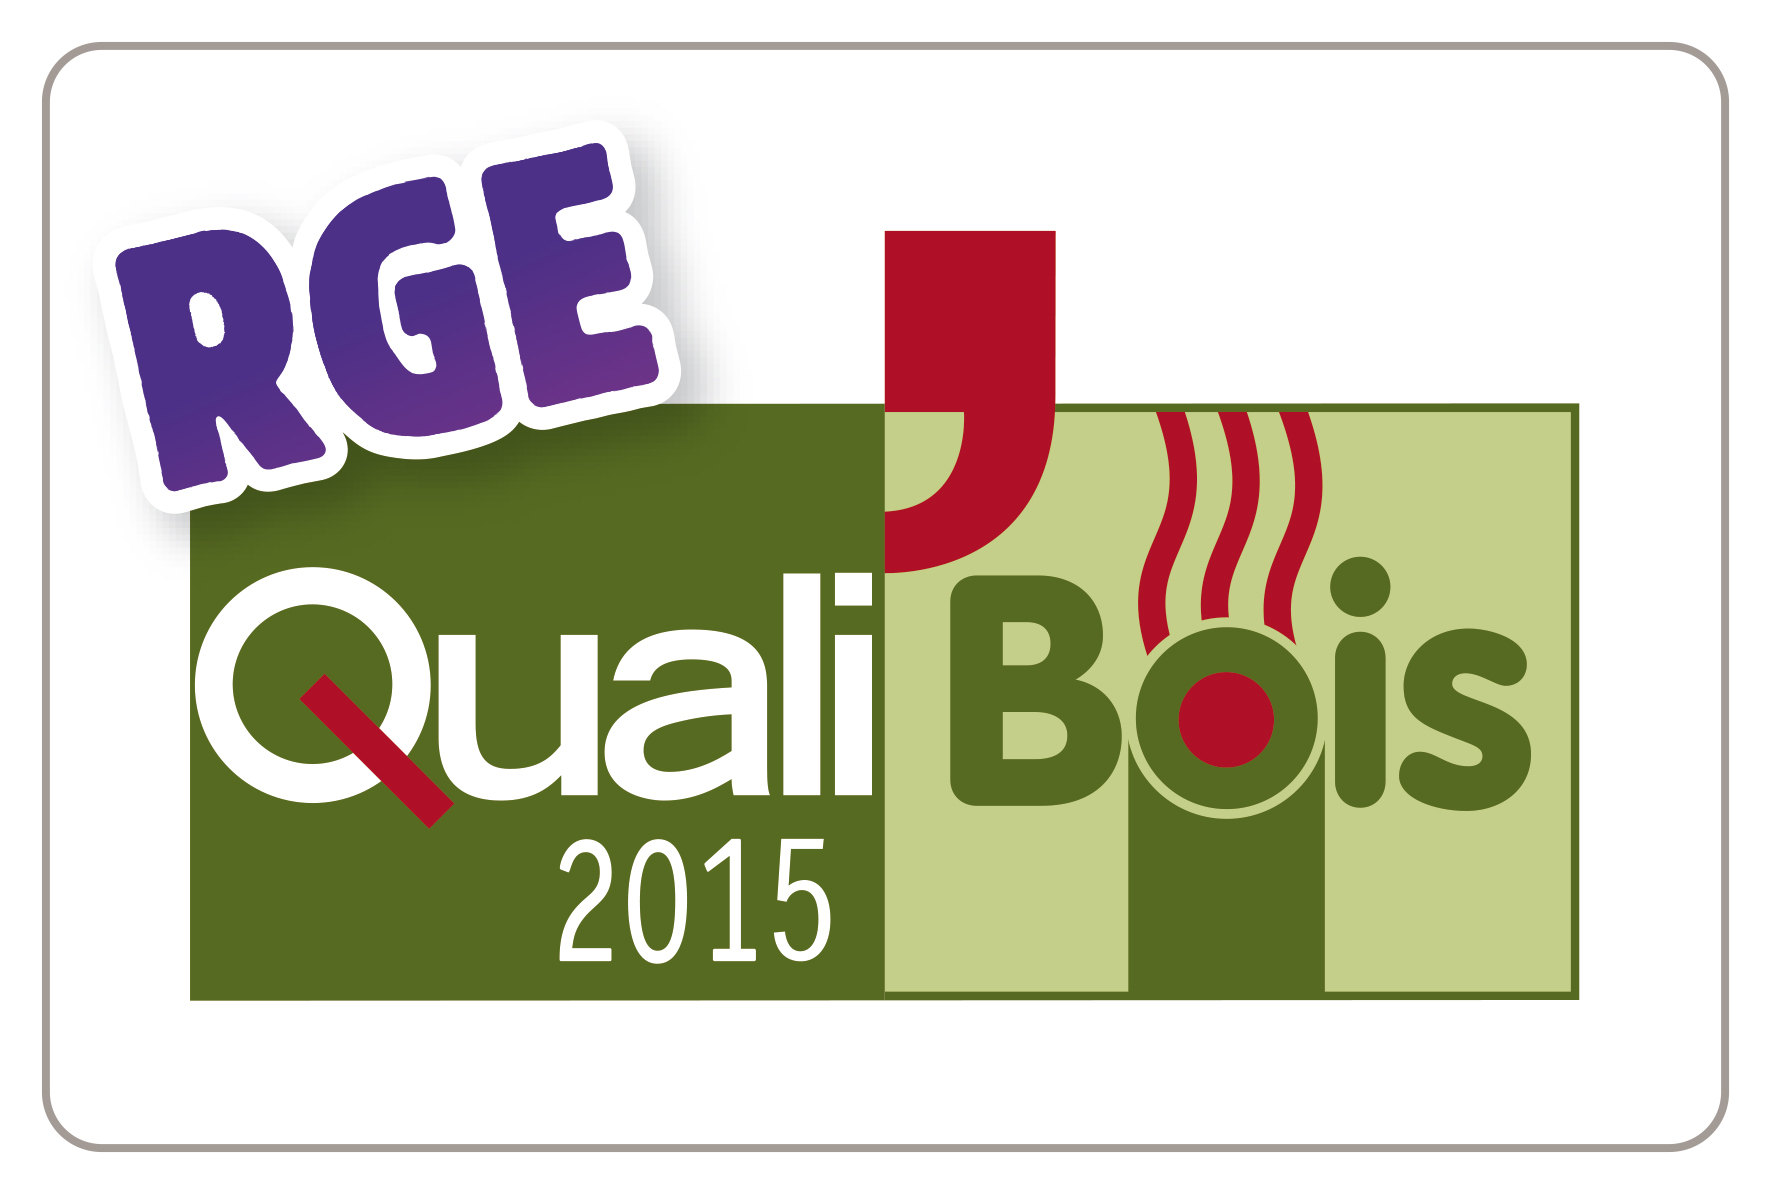 logo Qualibois 2015 RGE copie